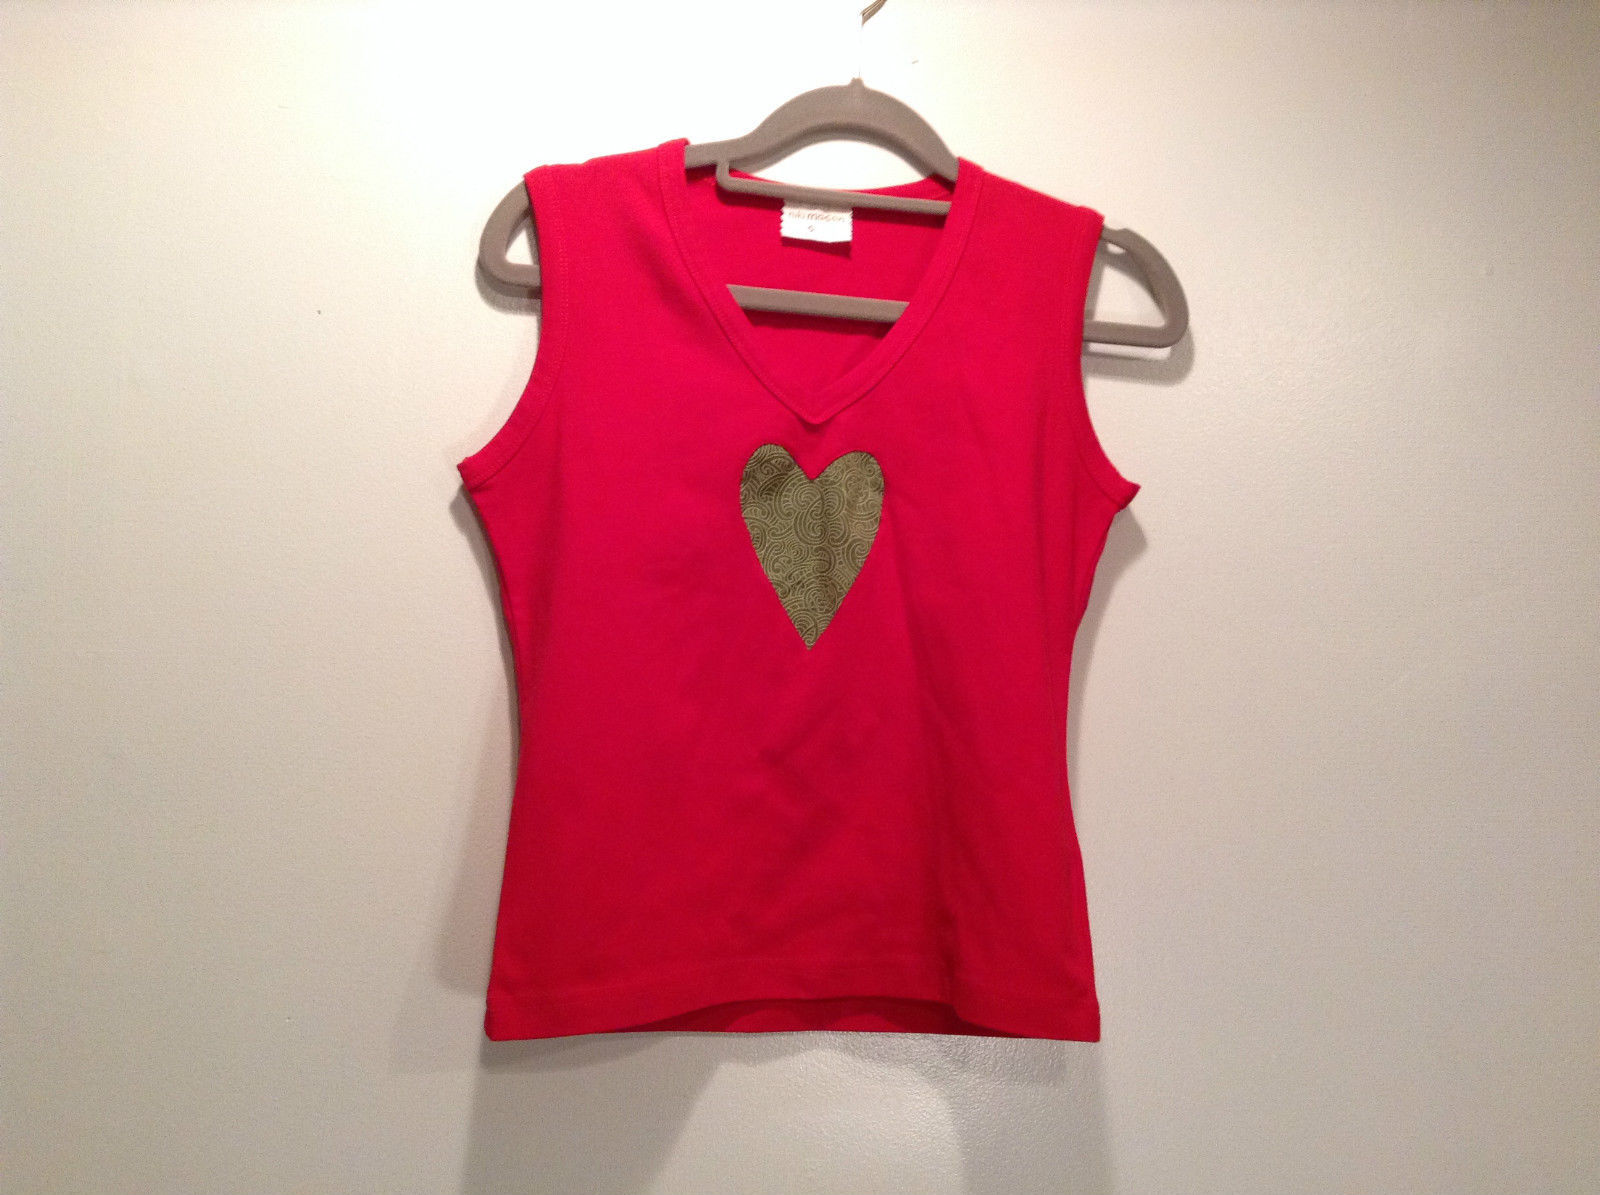 Red V Neck Sleeveless Top Size Small Niki Mason Graphic Shaped Heart on Front